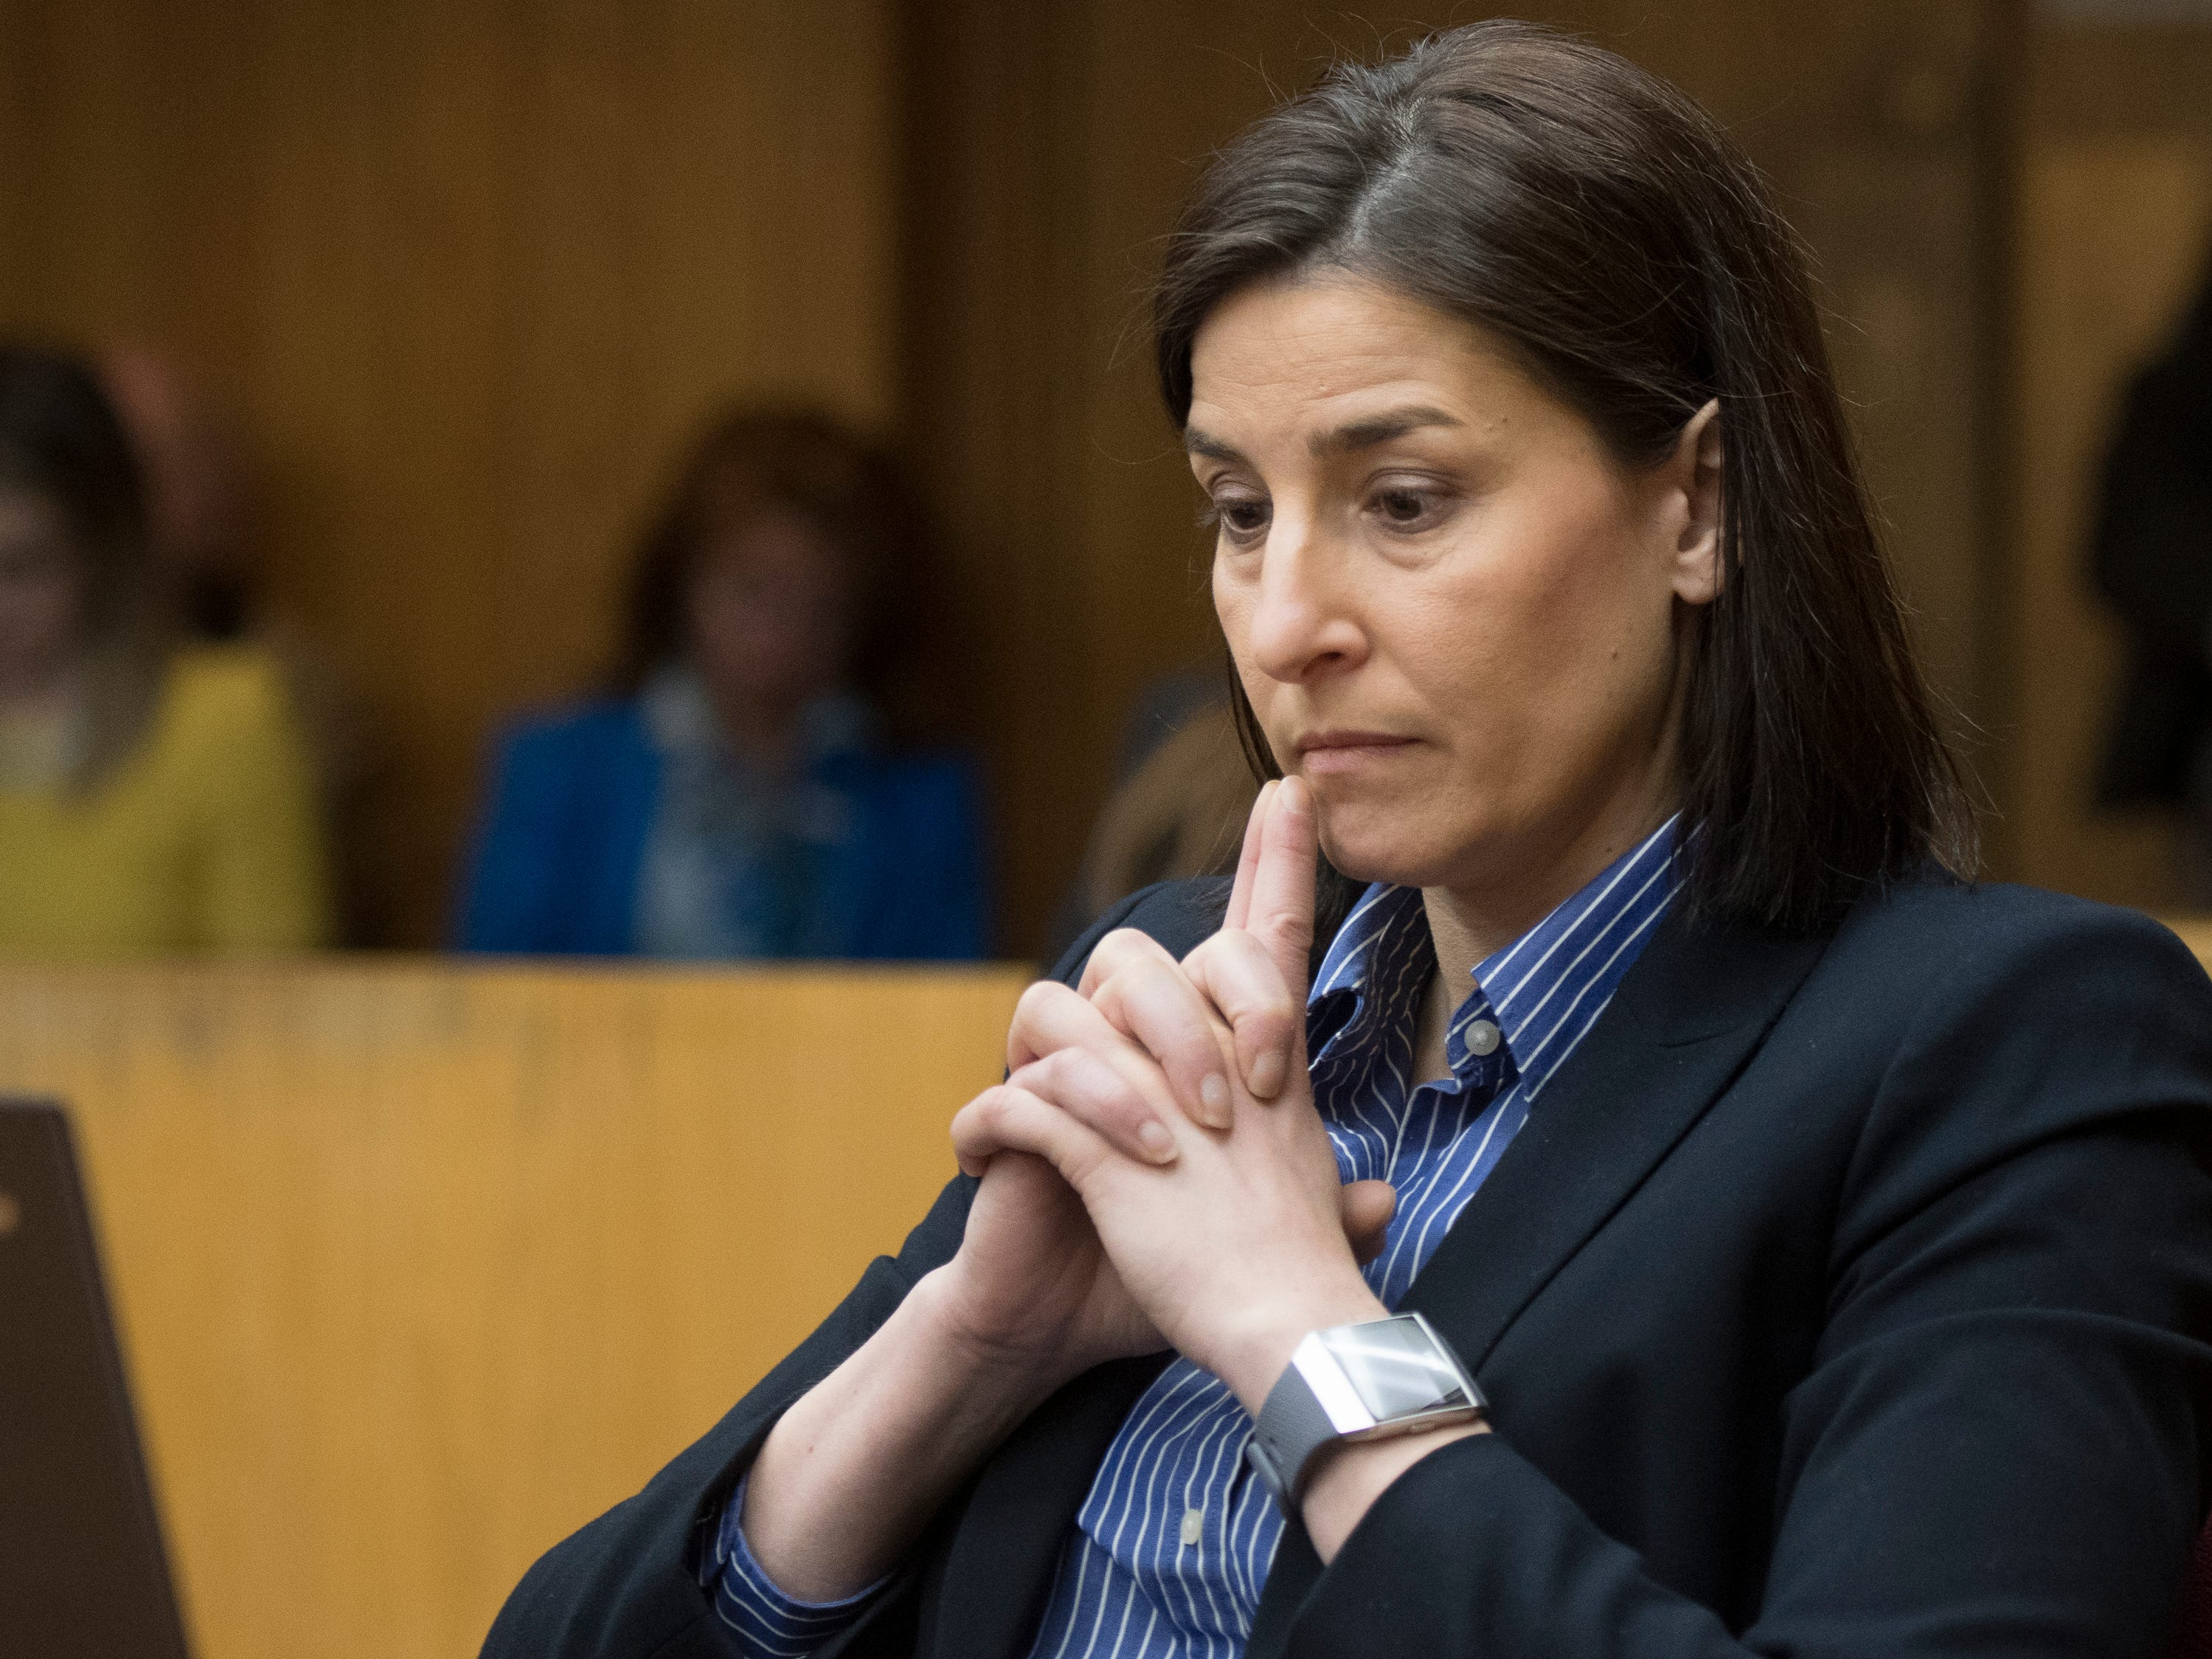 Assistant Attorney General Christina Grossi listens to opening arguments in District Judge Julie Reincke's courtroom, Tuesday, Feb. 5, 2019, during the first day of former MSU President Lou Anna Simon's preliminary hearing in Charlotte, Michigan.  Simon faces four charges, including two felonies, because investigators say she lied to police about when she knew about a sexual assault report against former MSU doctor Larry Nassar.  